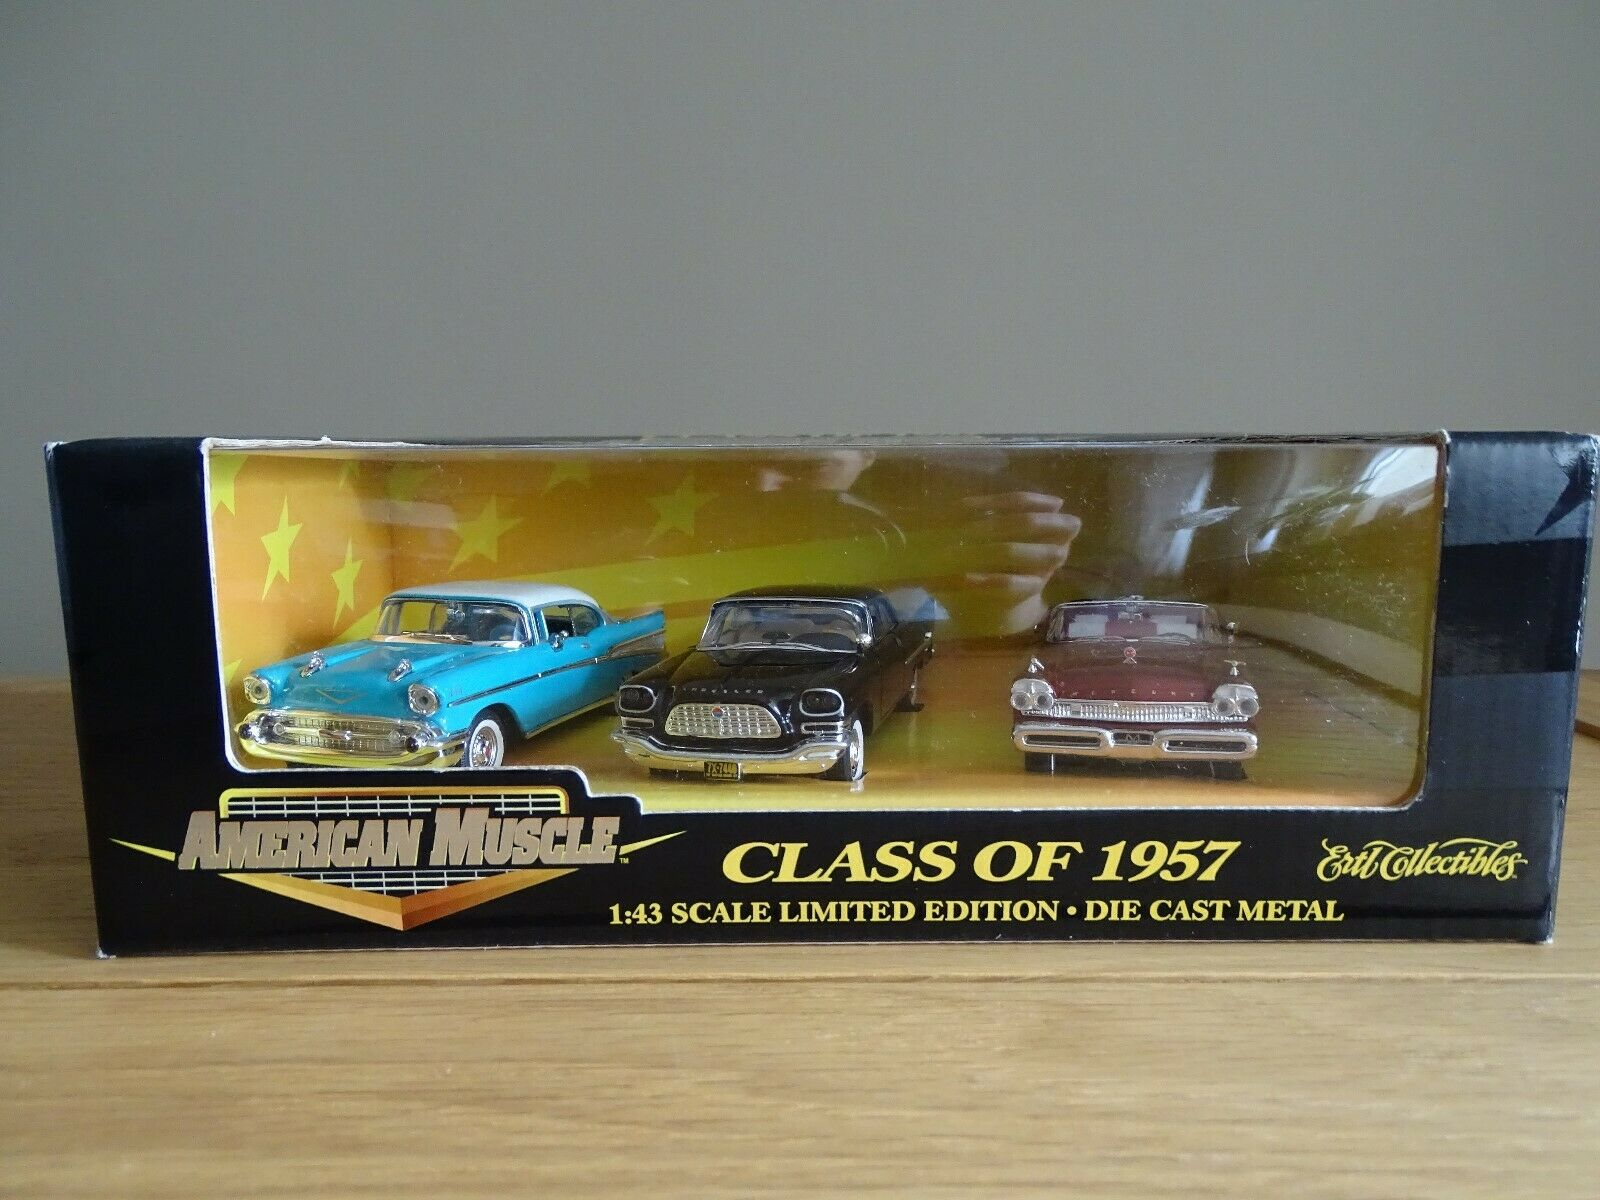 1 43 Ertl 32001 Class of 1957 Chevrolet Bel air, Mercury Cruiser, Chrysler 300 C